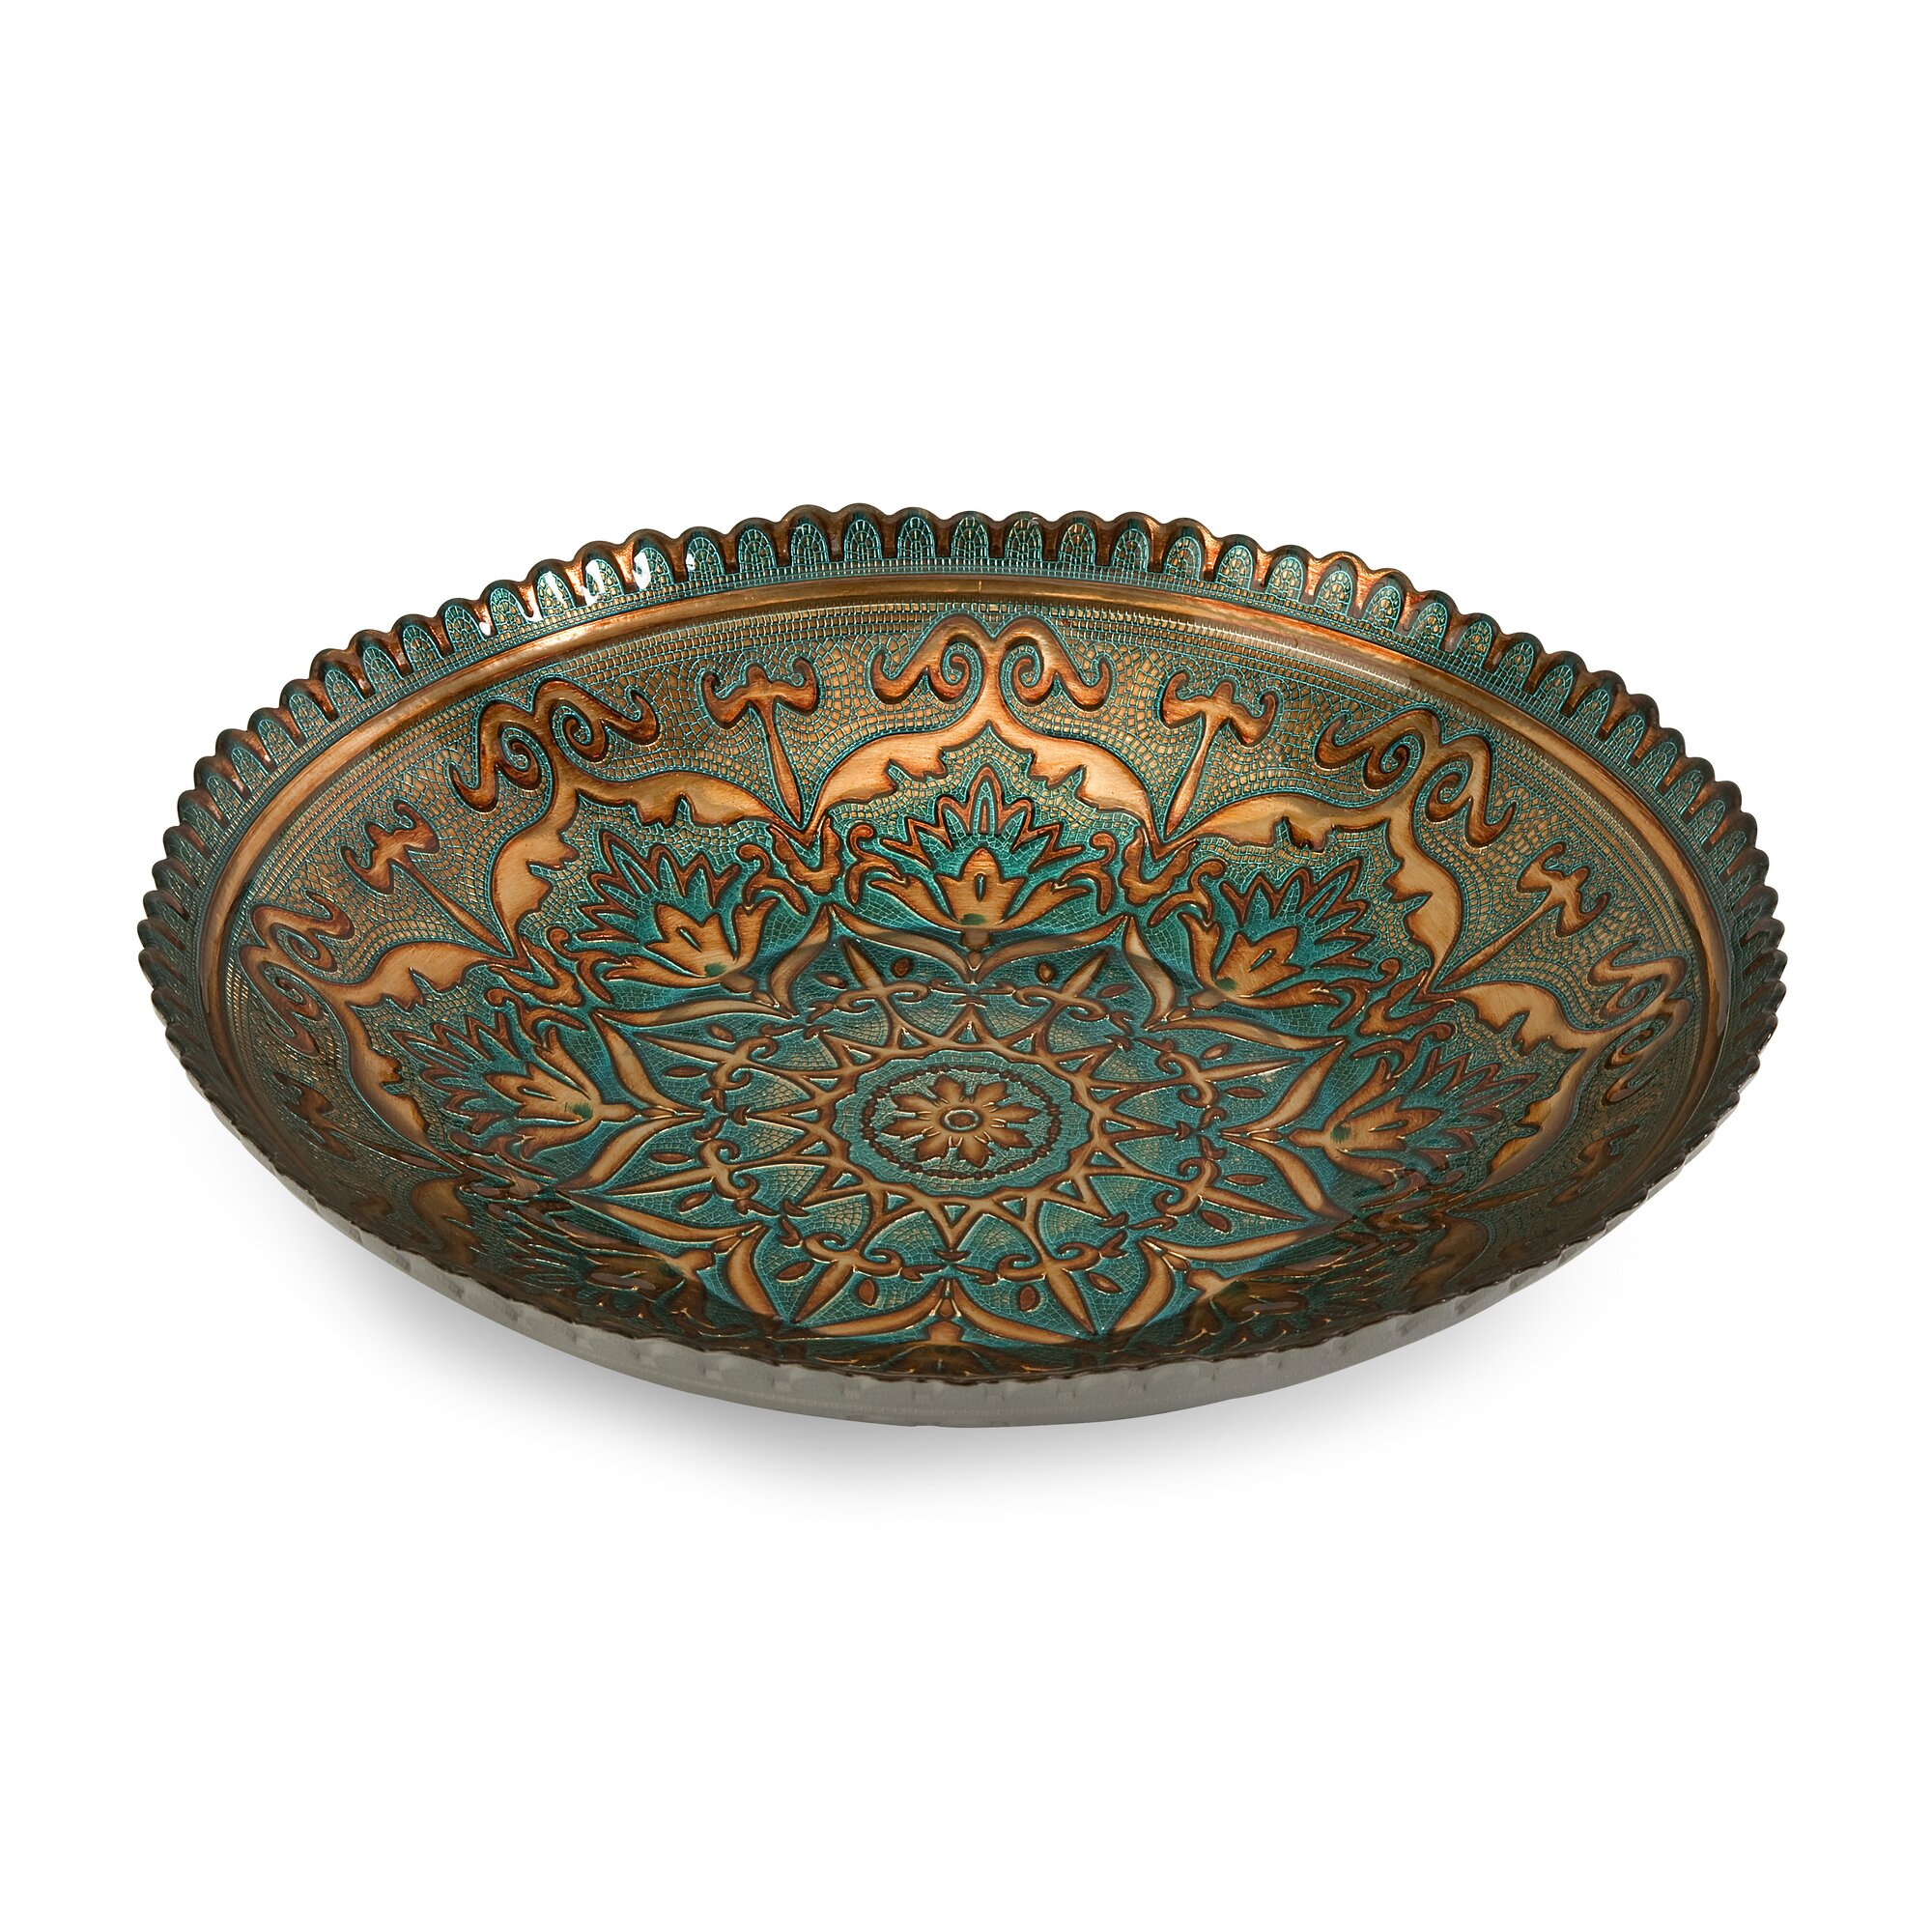 ravenna glass decorative bowl - Decorative Glass Bowls